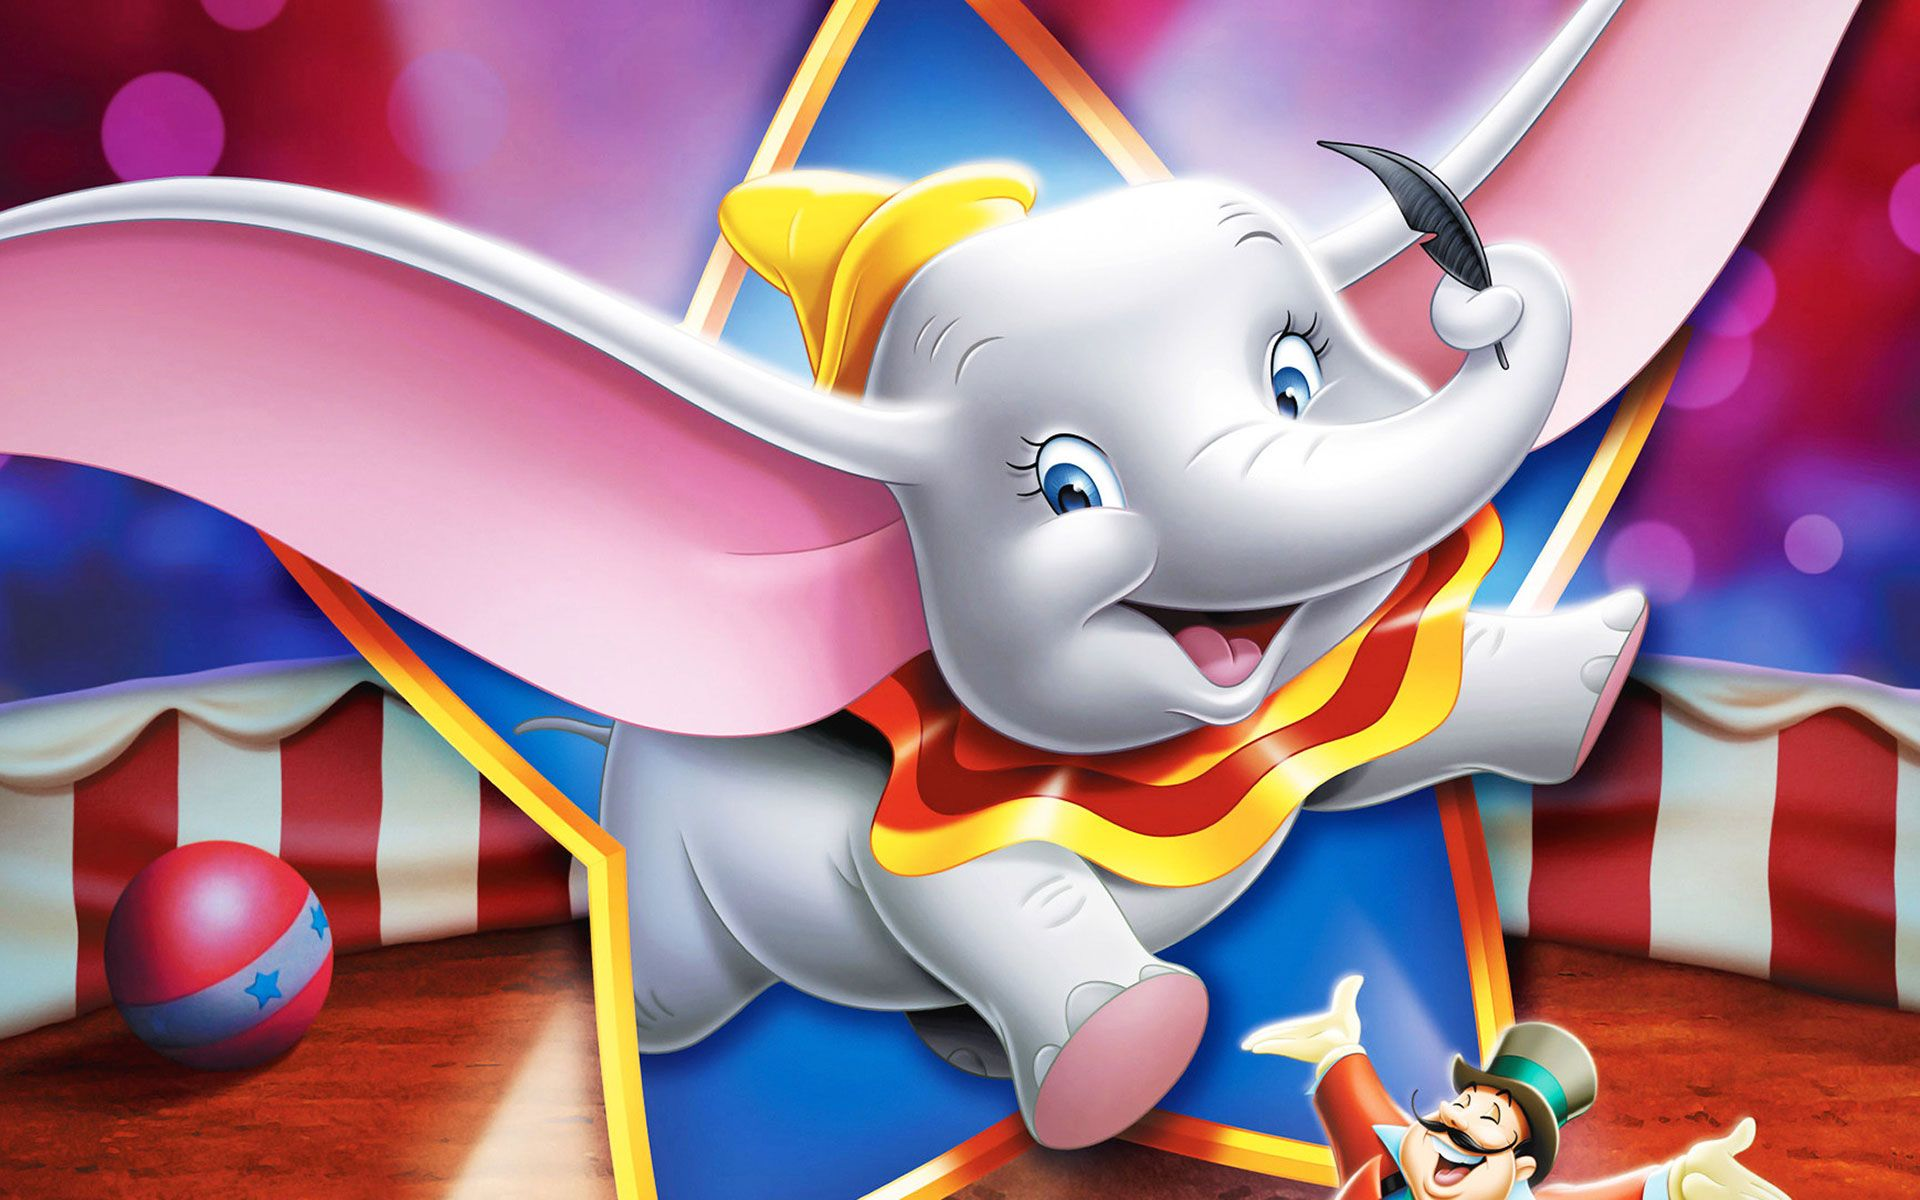 Dumbo Elephant And Magic Feather 1920x1200 Wallpaper Hd Anime Disney Dumbo Dumbo Movie Disney Movie Posters